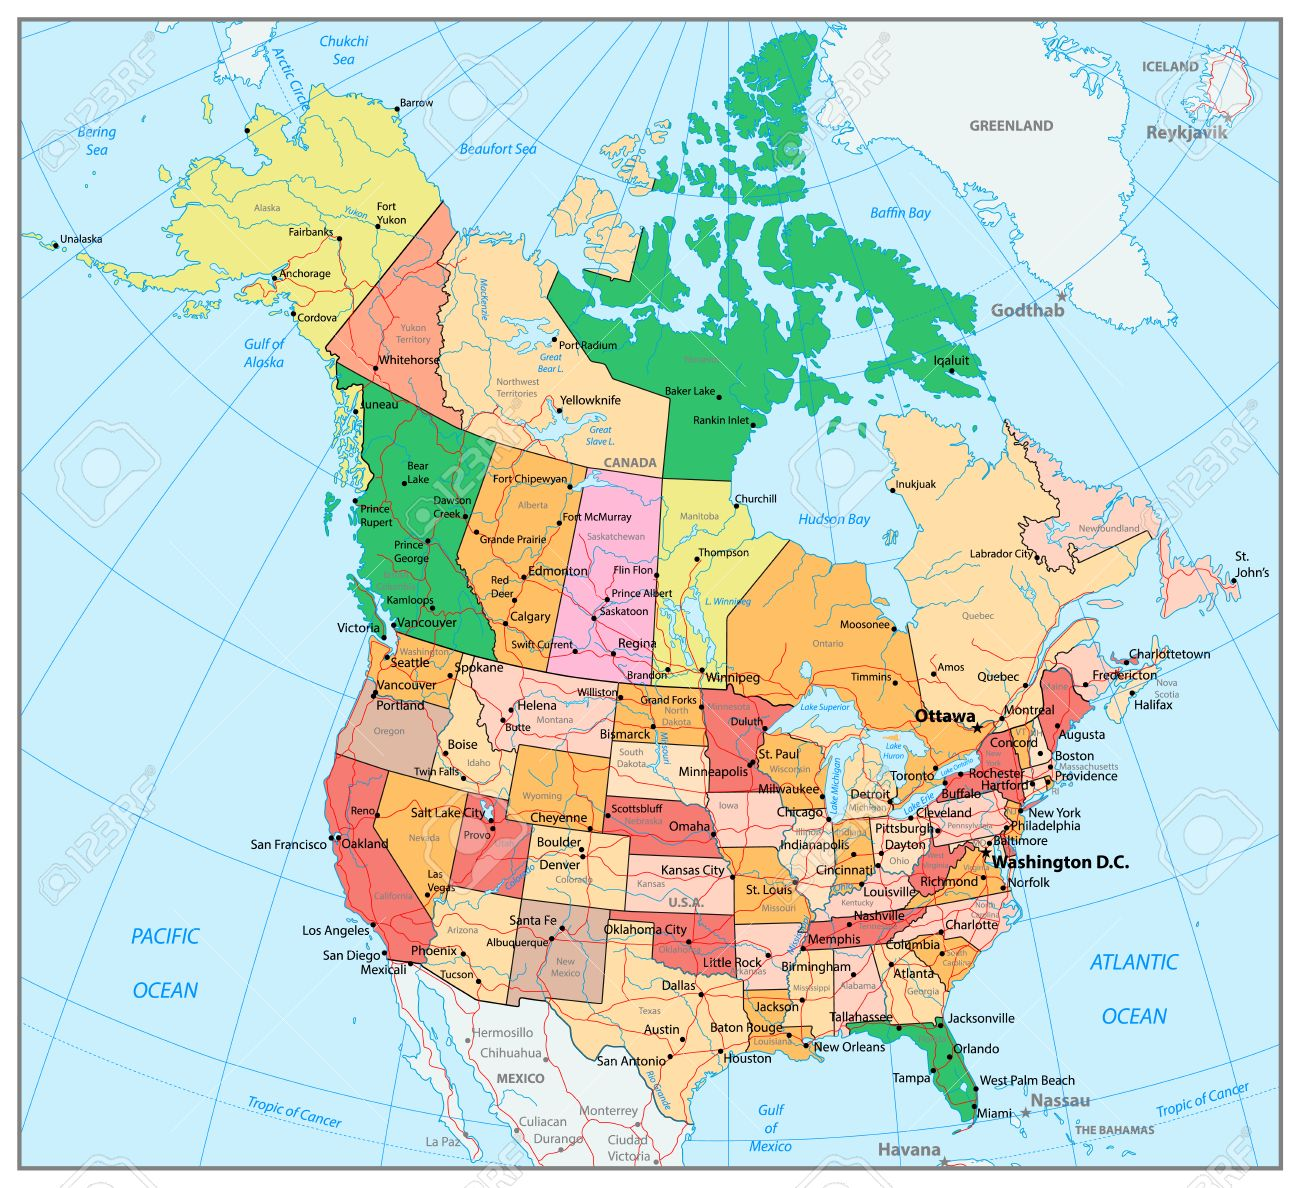 USA And Canada Large Detailed Political Map With States Provinces - Canada usa map states and provinces